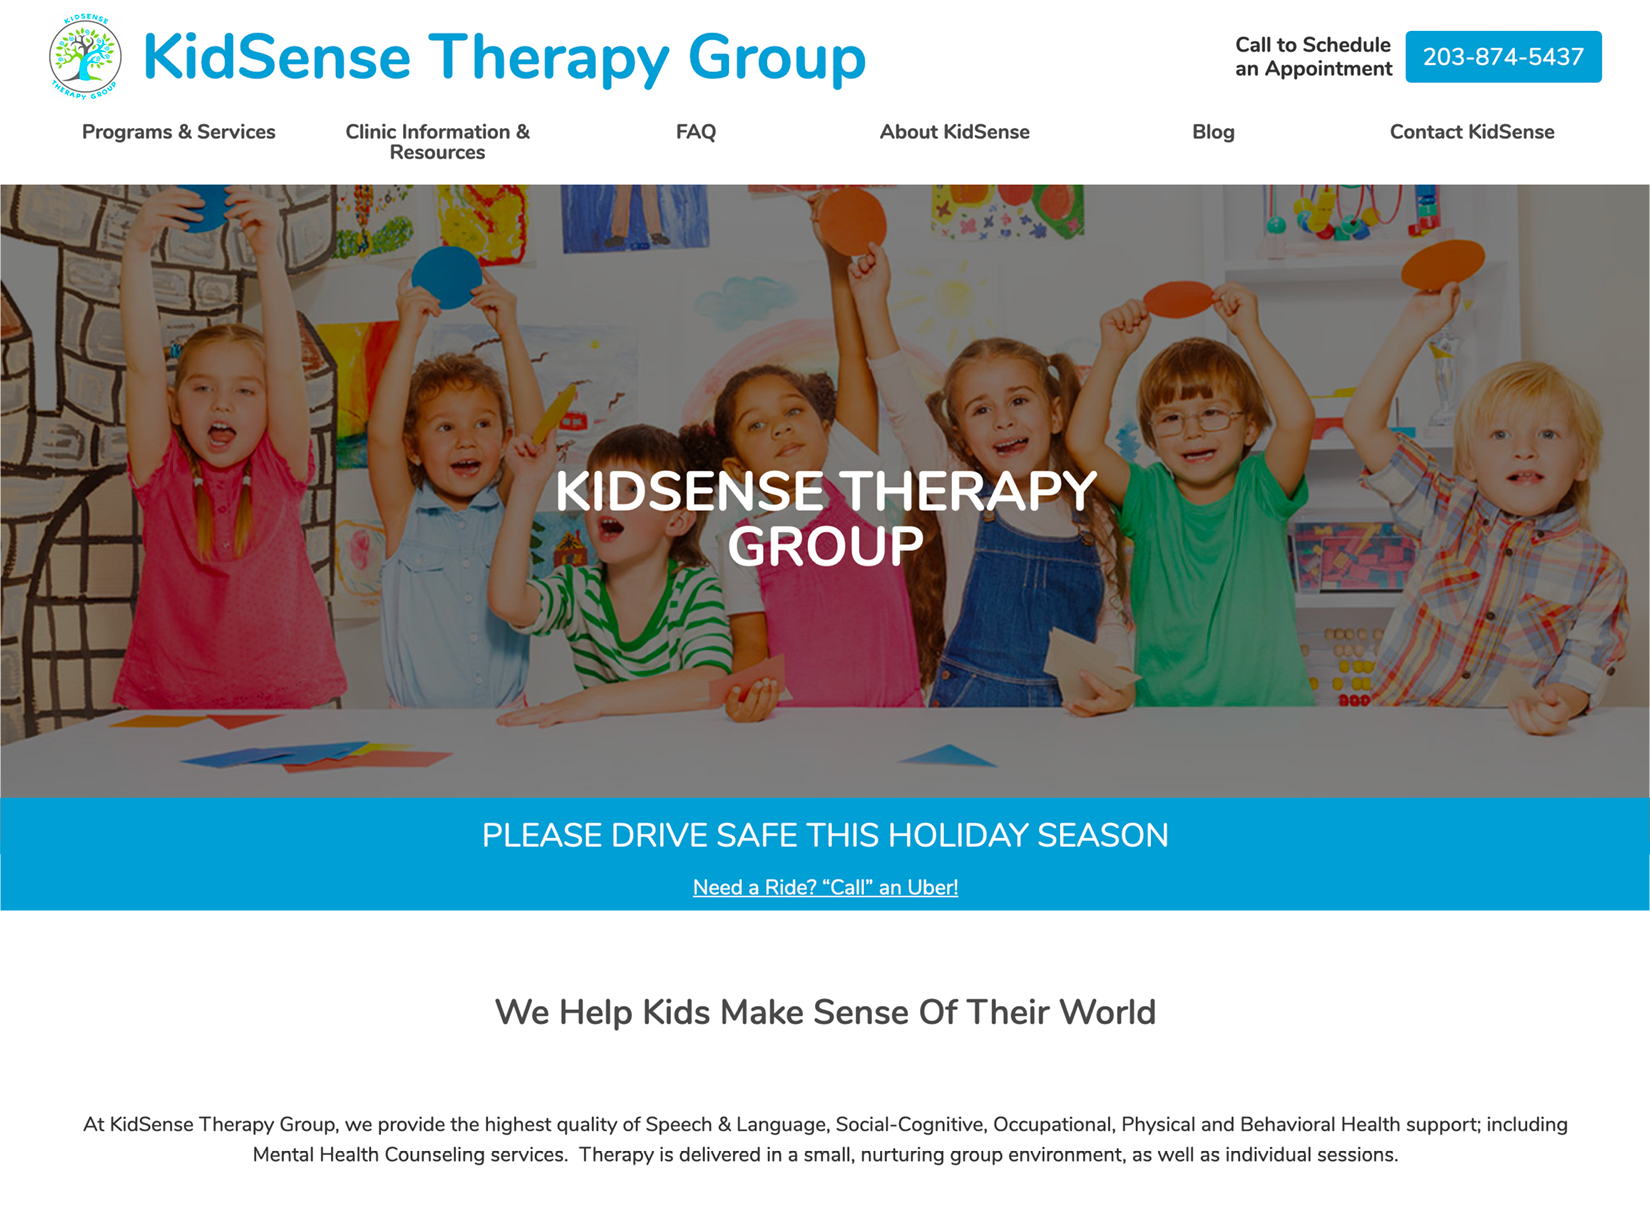 KidSense Therapy Group